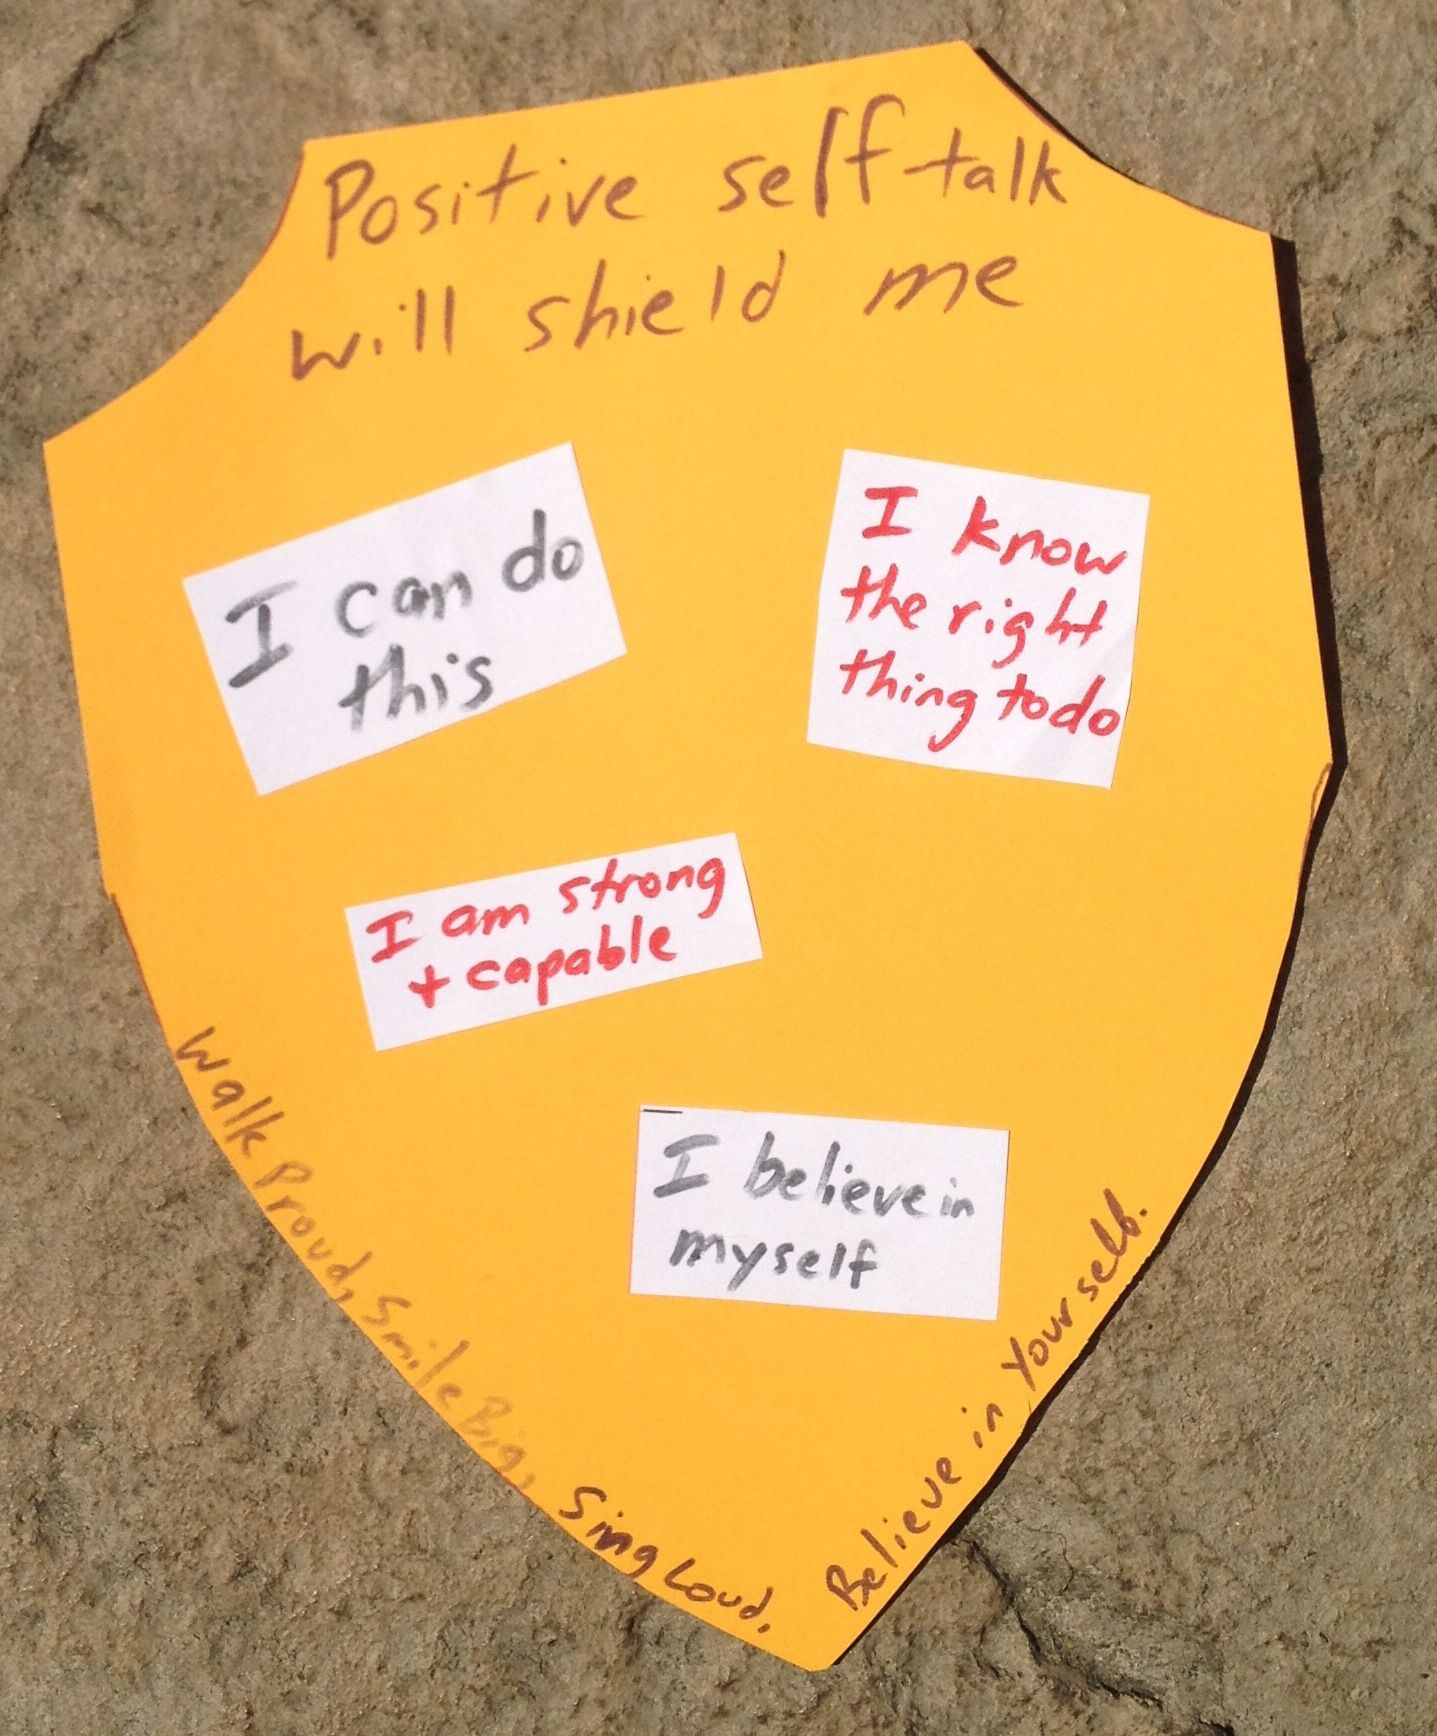 Positive Self Talk Shield Could Also Do Assertive